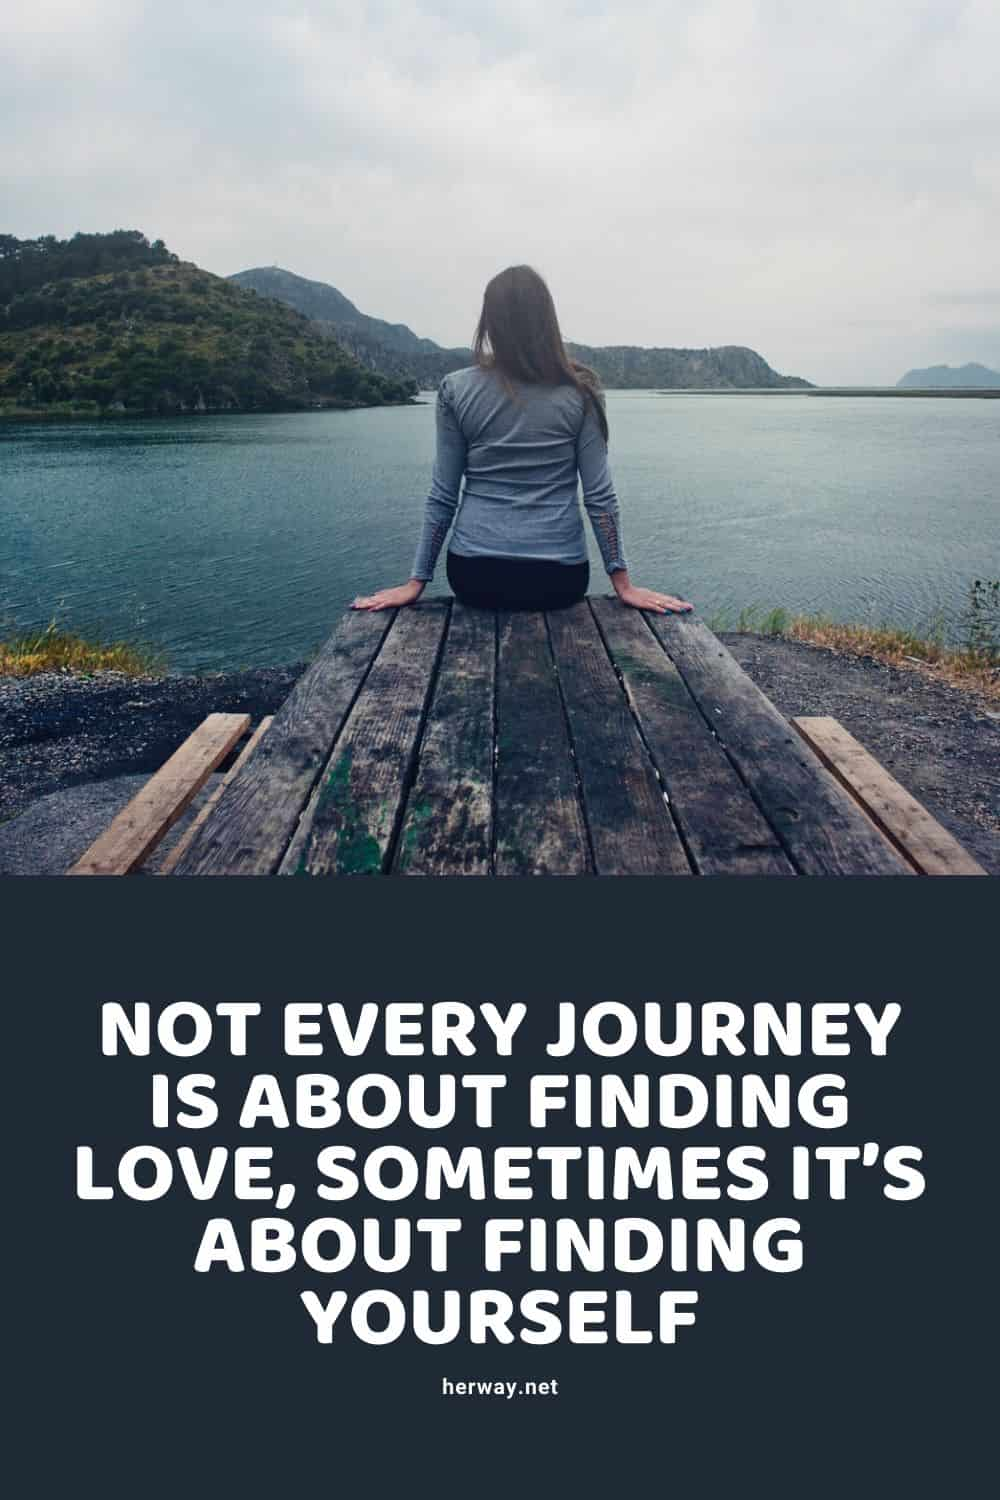 Not Every Journey Is About Finding Love, Sometimes It's About Finding Yourself